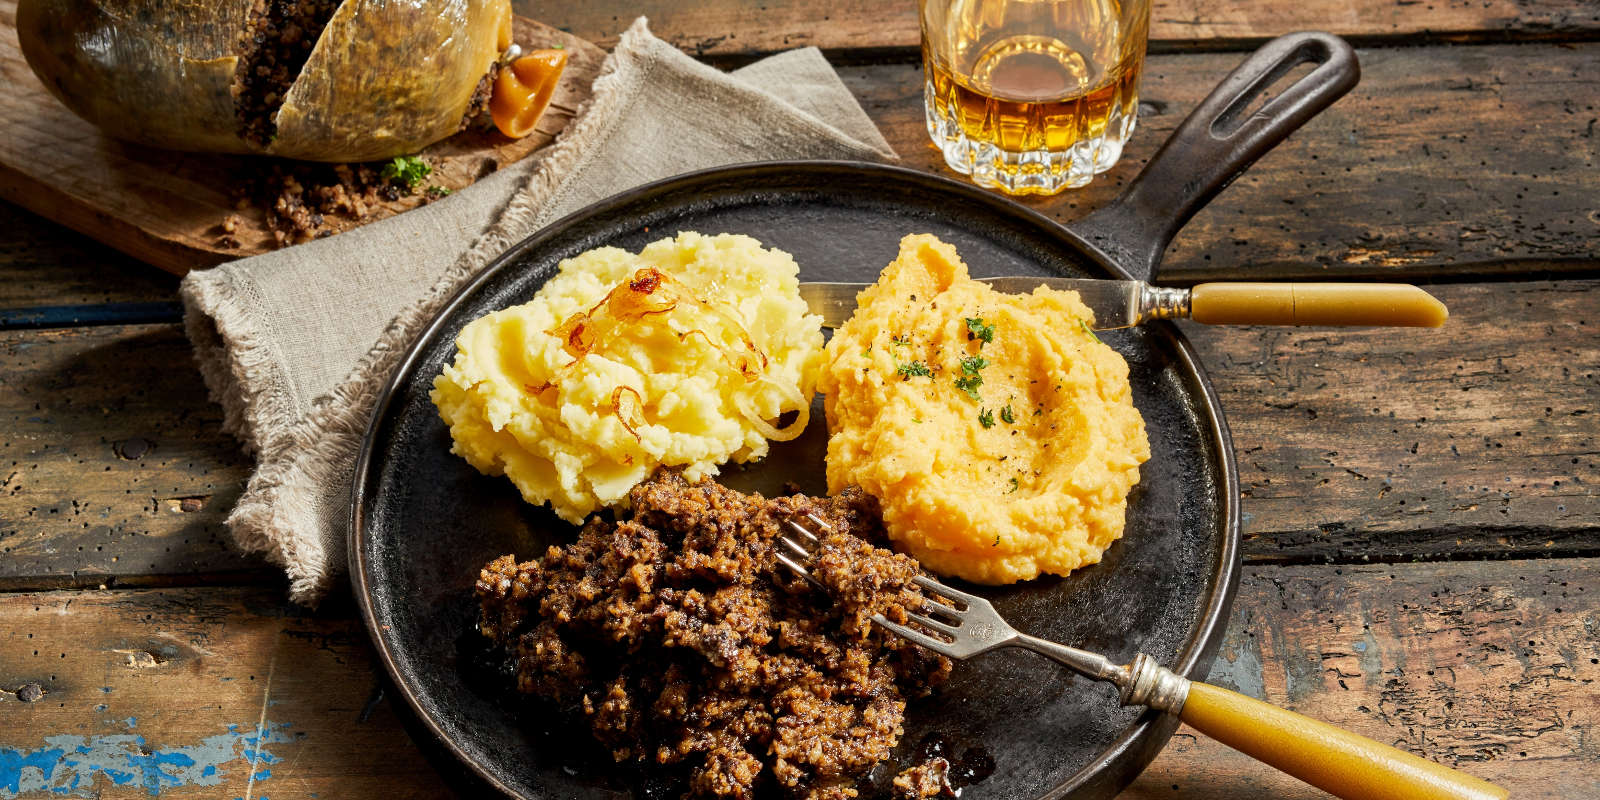 A traditional Burns Supper of haggis, neeps and tatties with a glass of whisky